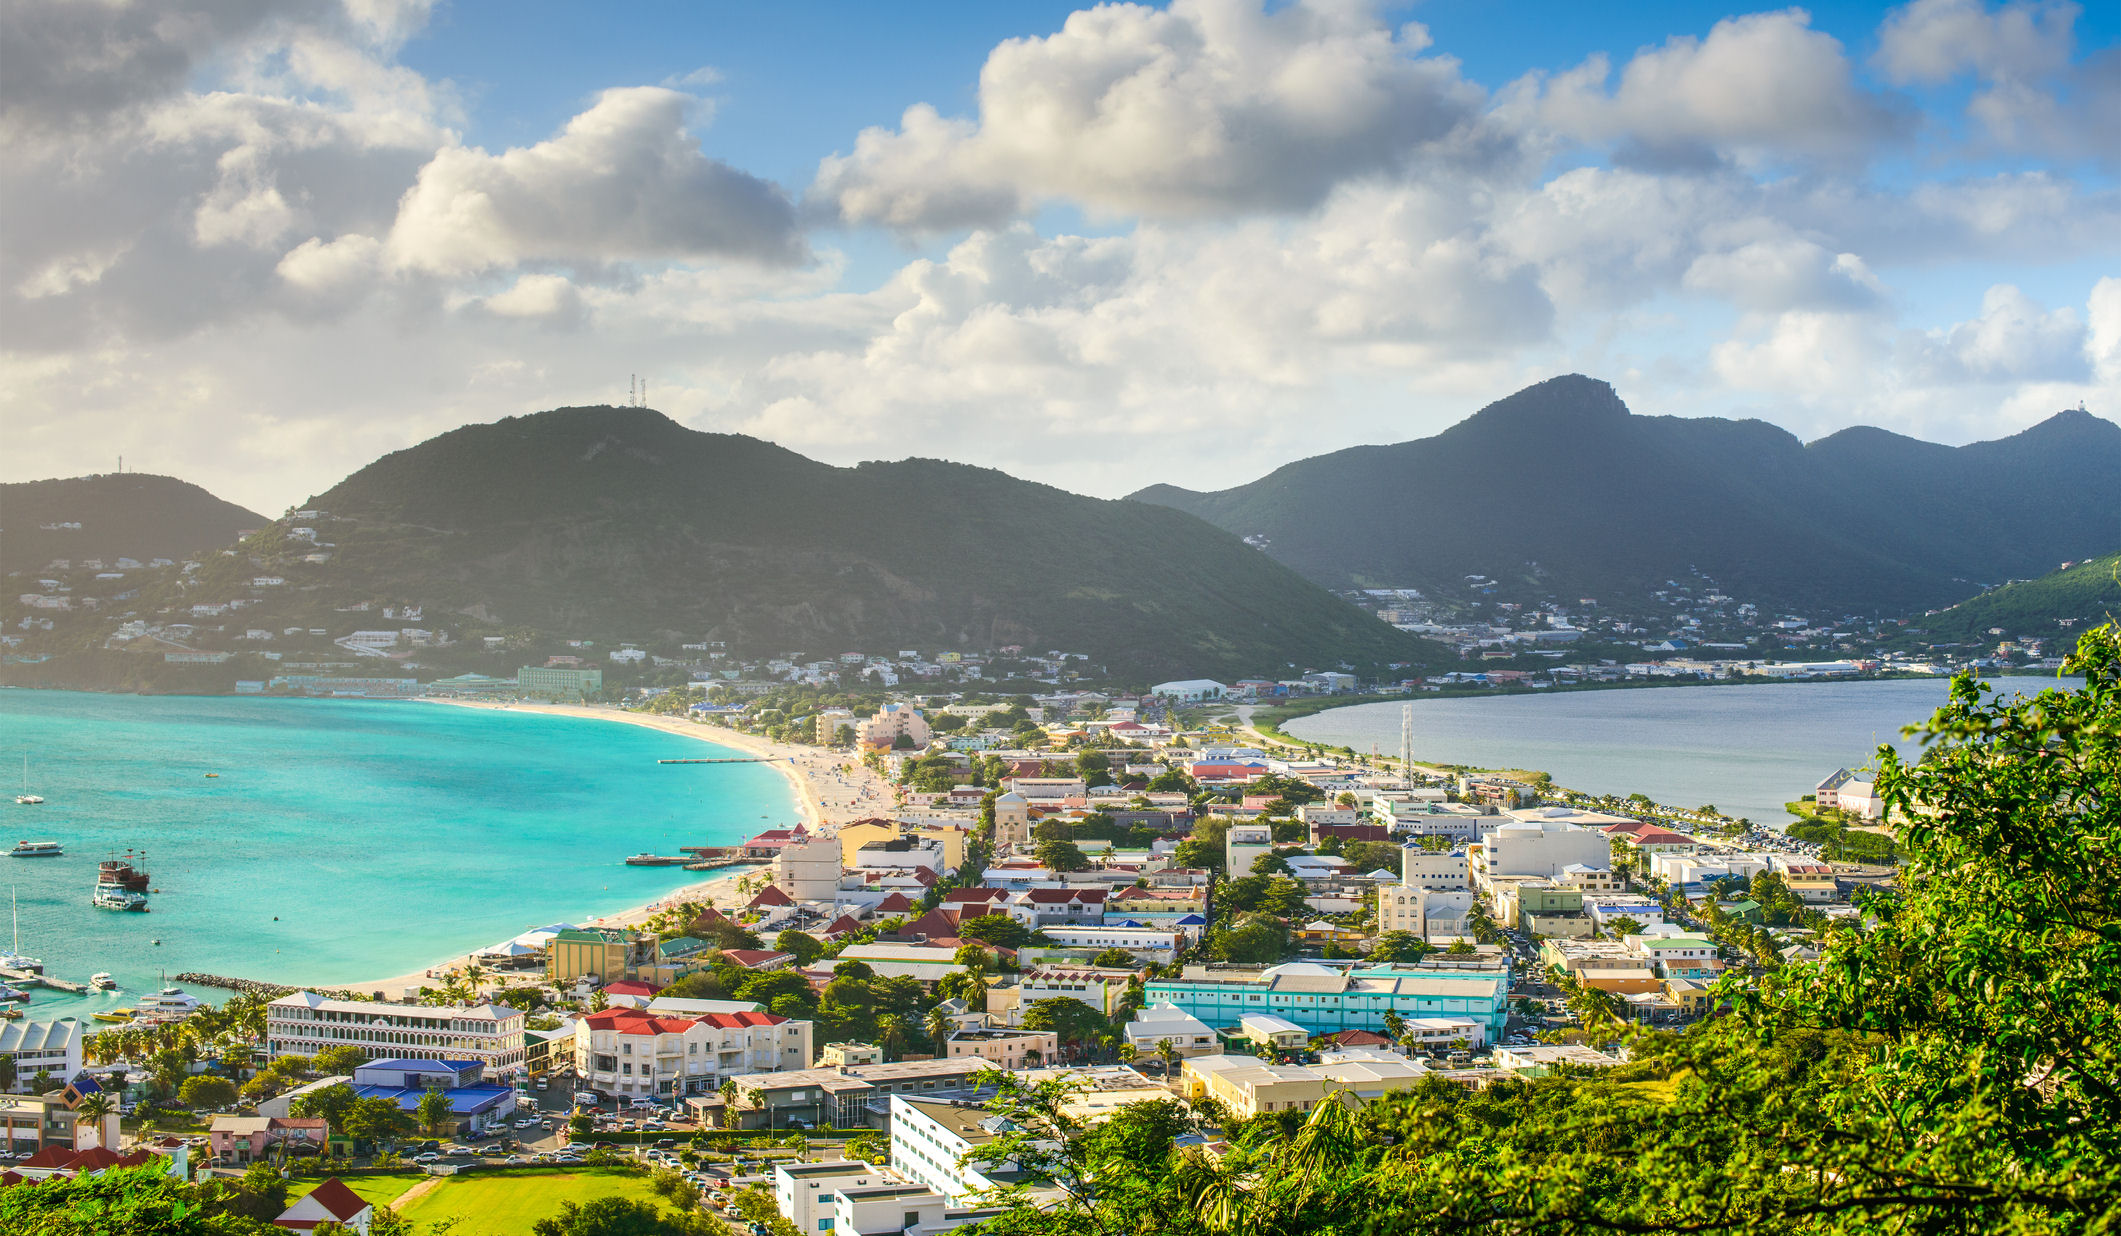 The island of St. Maarten